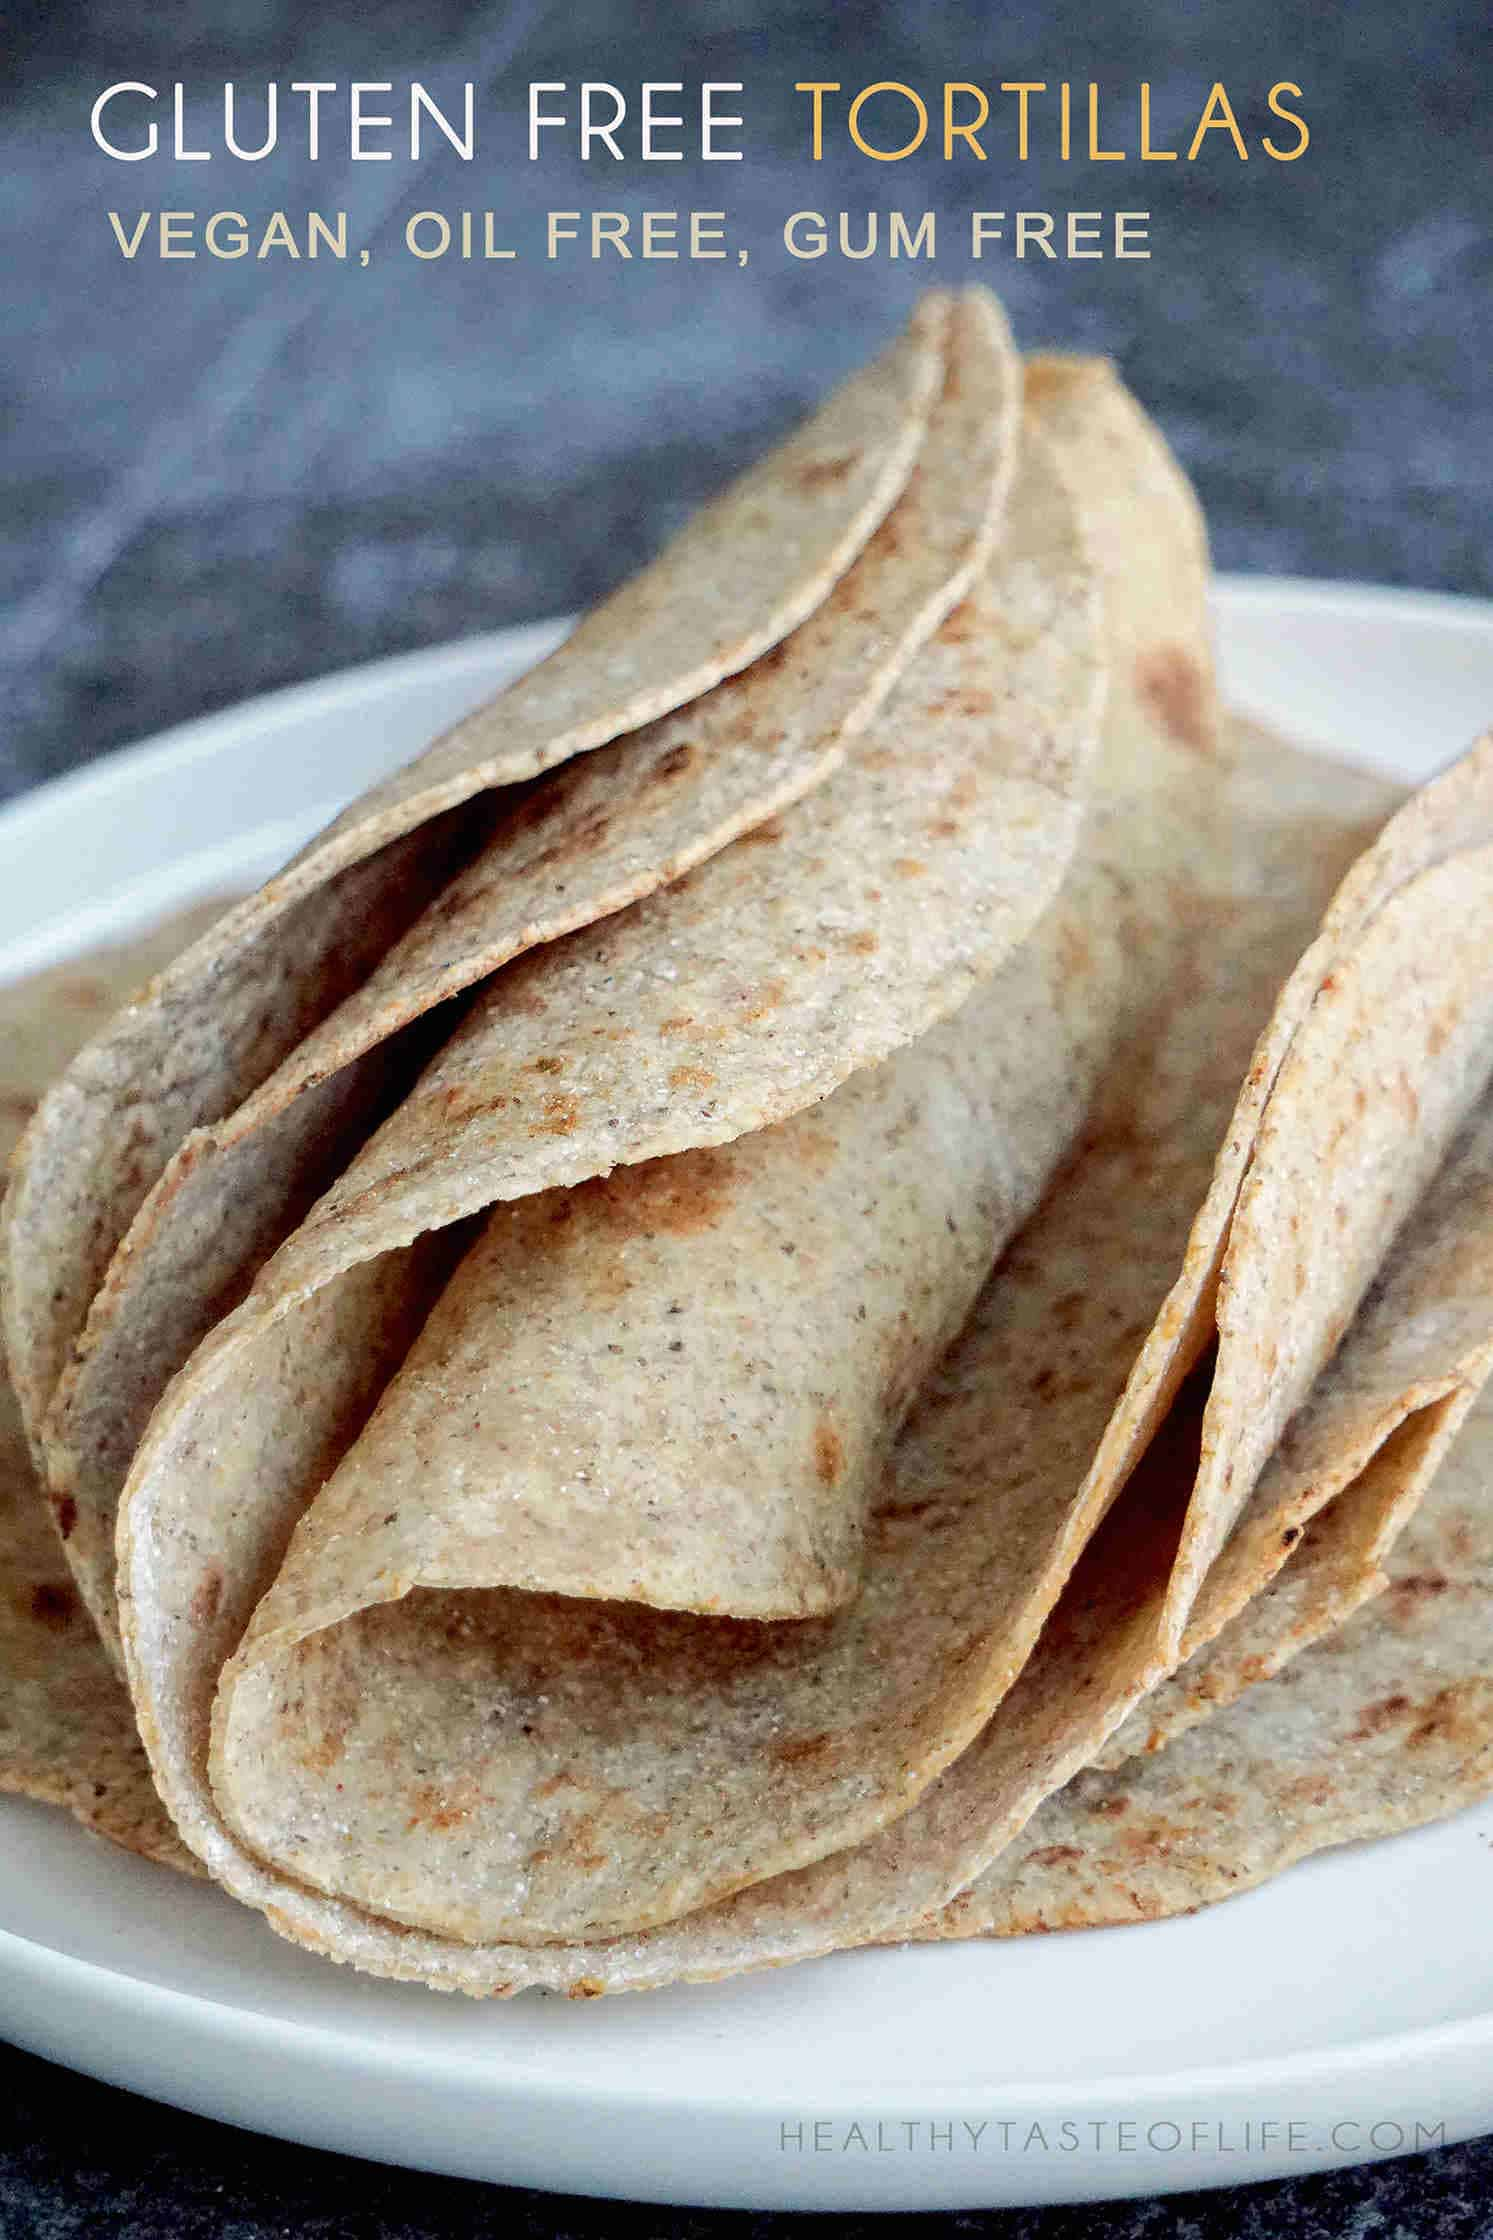 Healthy gluten free tortillas recipe (vegan)  + VIDEO, made with healthy ingredients, no oil, no dairy, no eggs, no nuts, no baking powder – perfect for clean eating. Makes 5 healthy gluten free vegan tortillas. These homemade gluten free tortillas are nutrient packed— great for wraps, tacos, burritos or enchiladas.